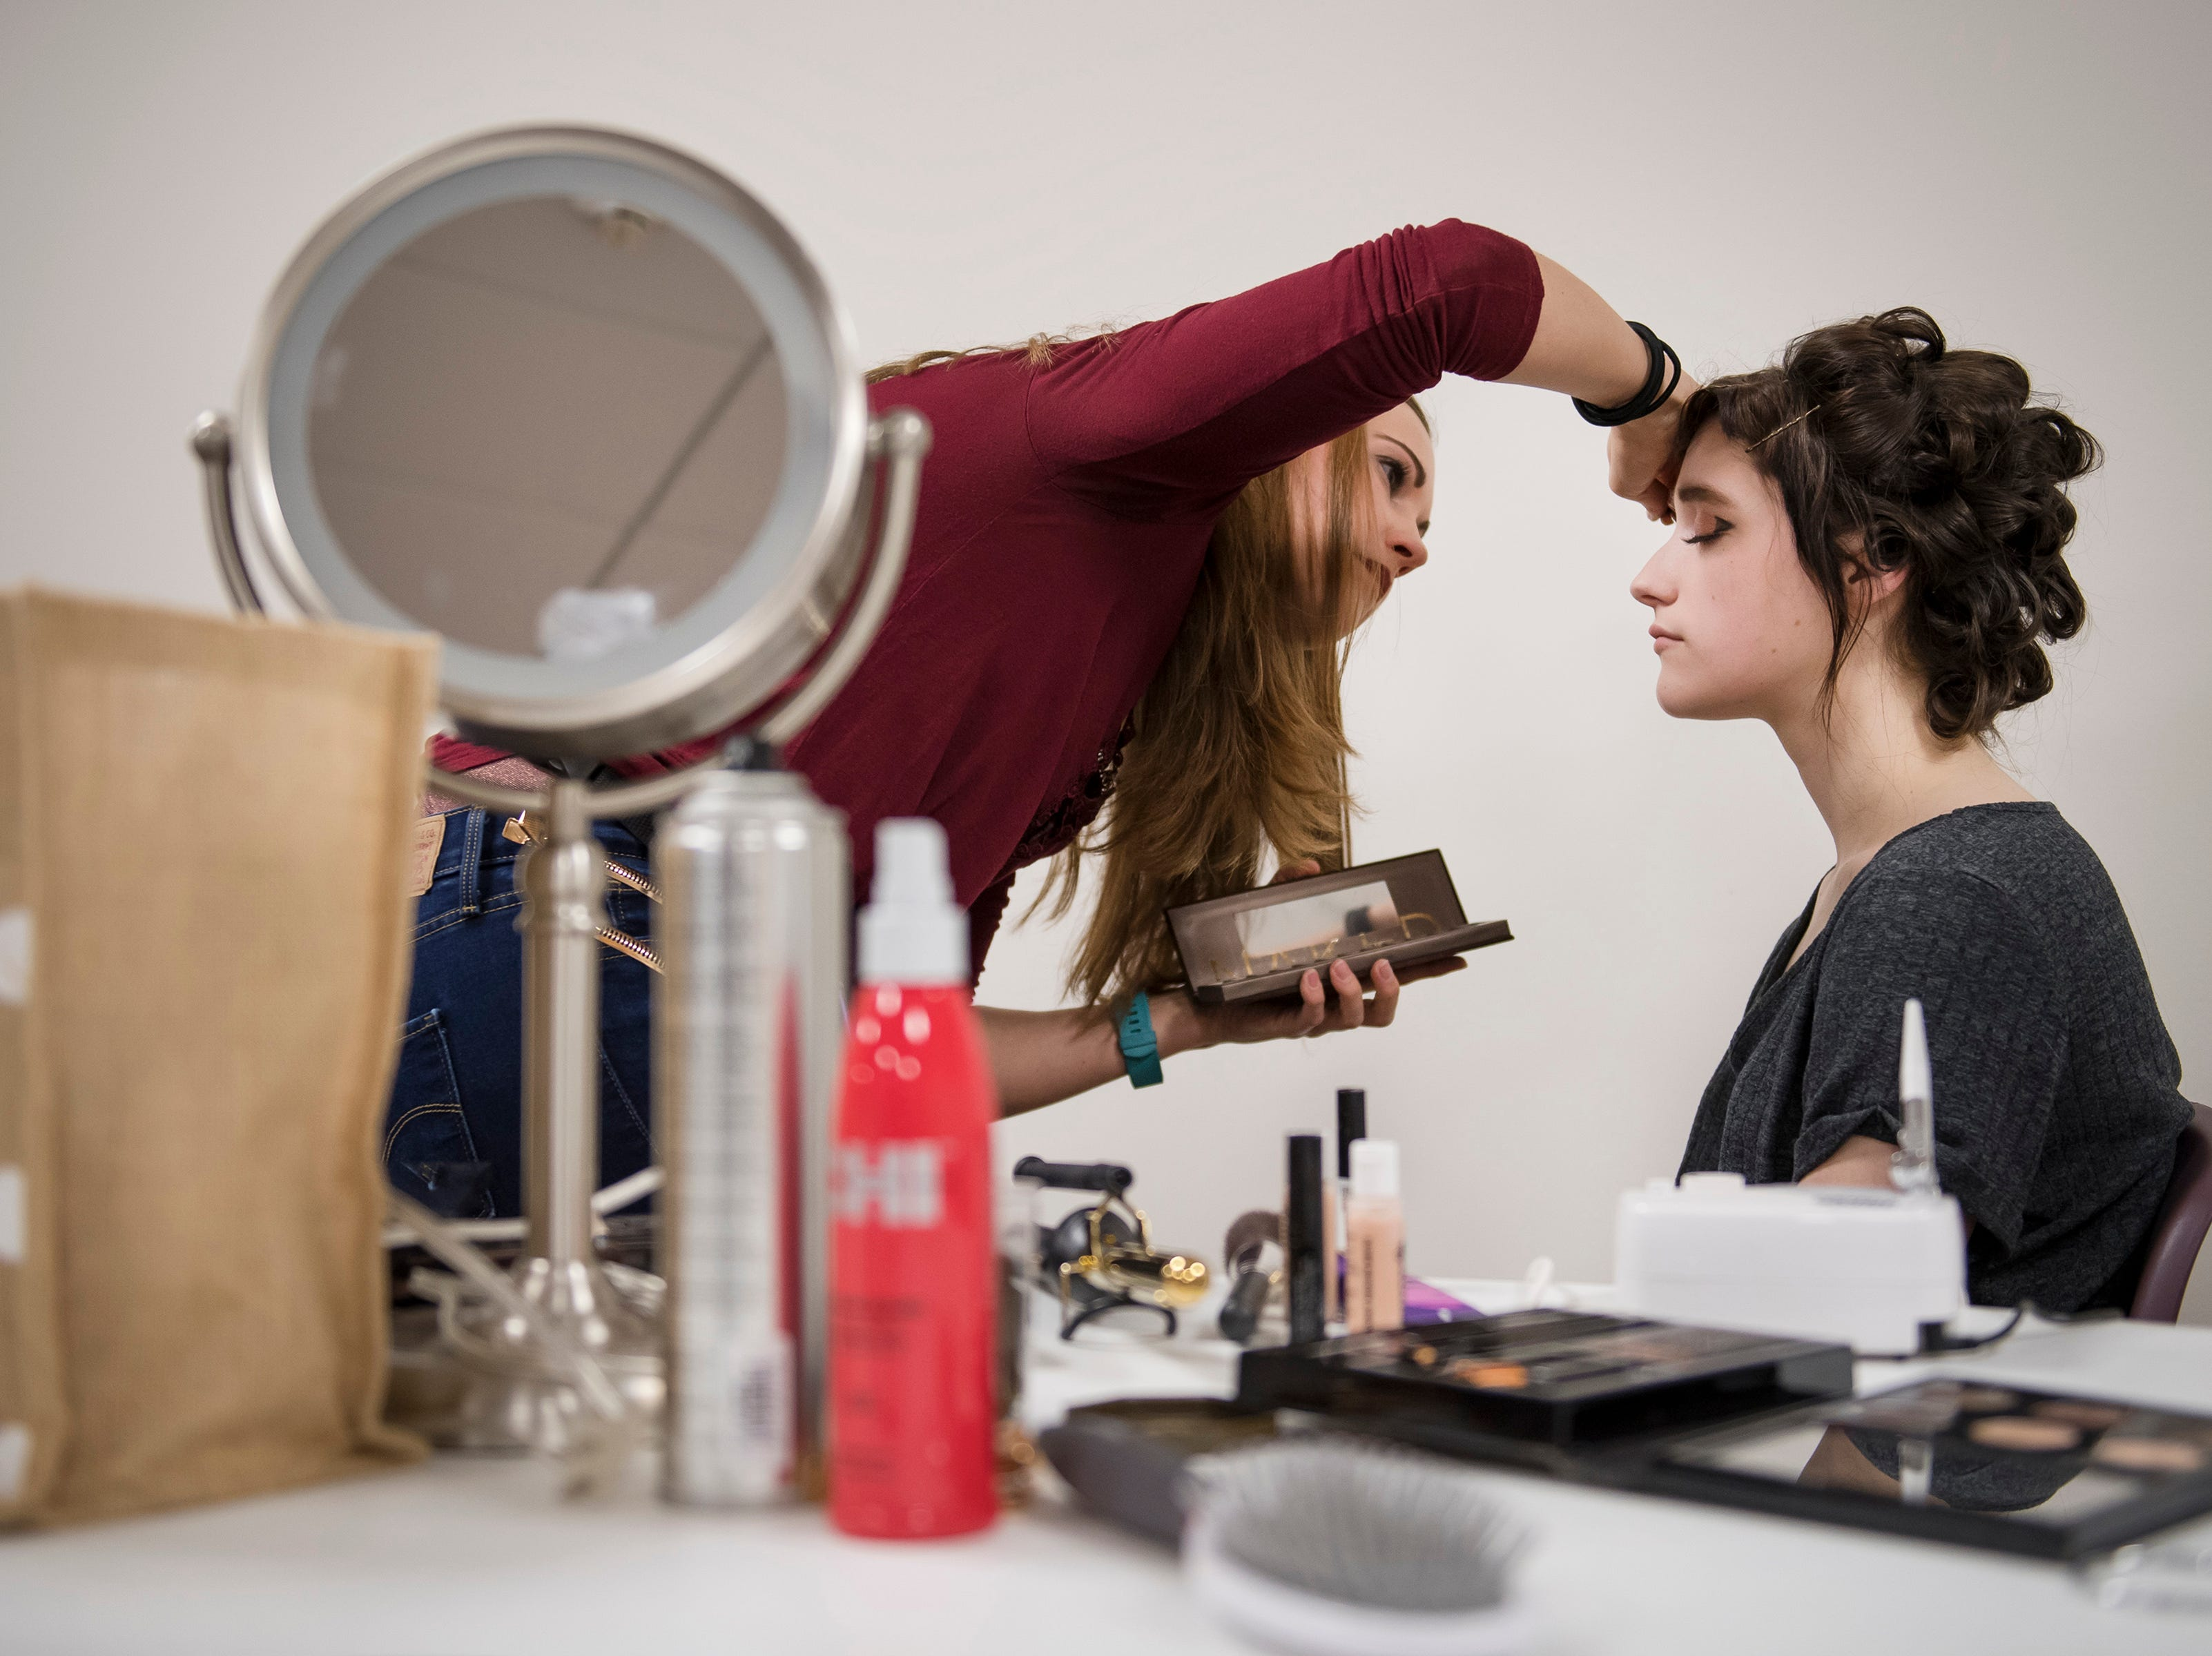 UCHealth patient care assistant Jessica Purkal does hair and makeup for the bride, Grace Justice before her wedding on Thursday, Feb. 14, 2019, at UCHealth Poudre Valley Hospital in Fort Collins, Colo.